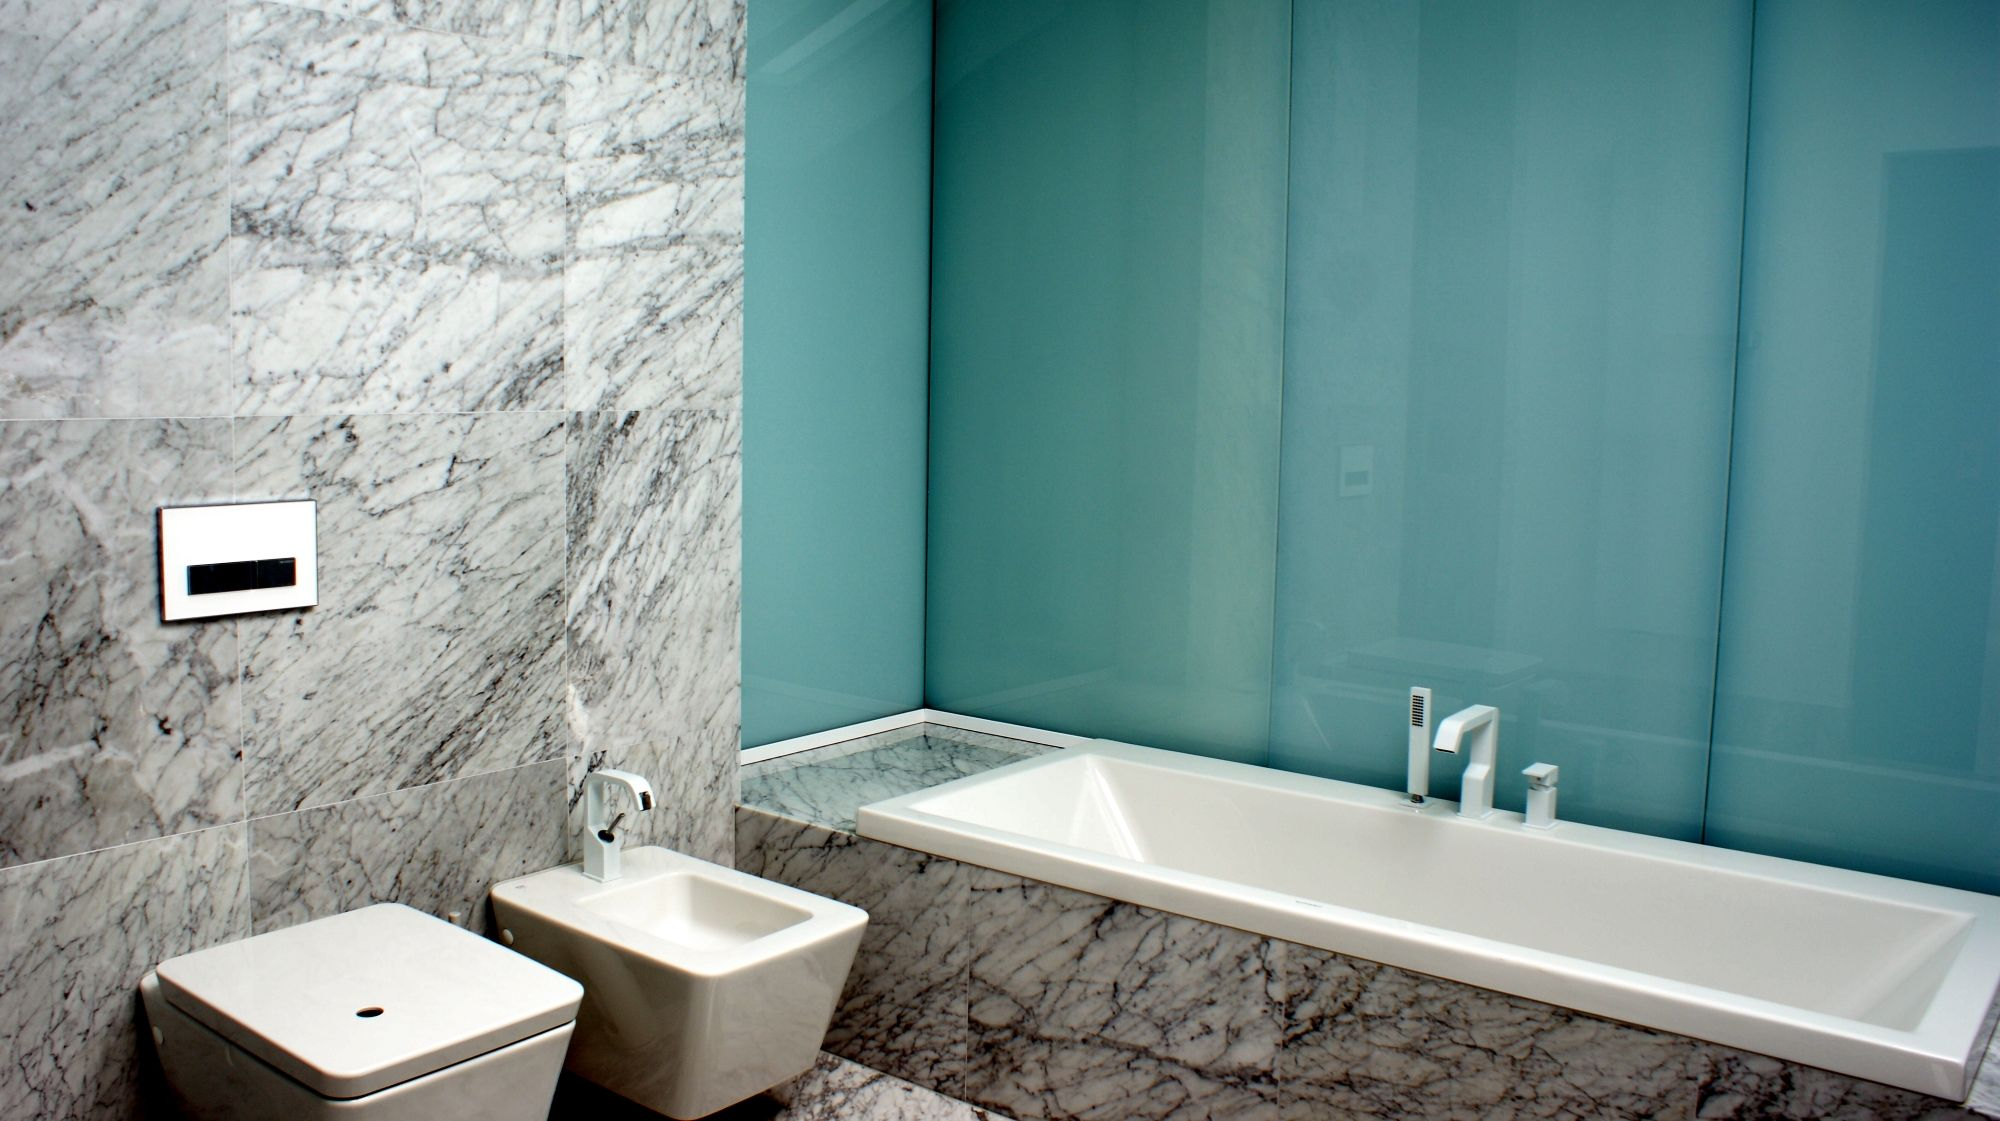 An example of a modern, minimalist bathroom with colored glass on ...